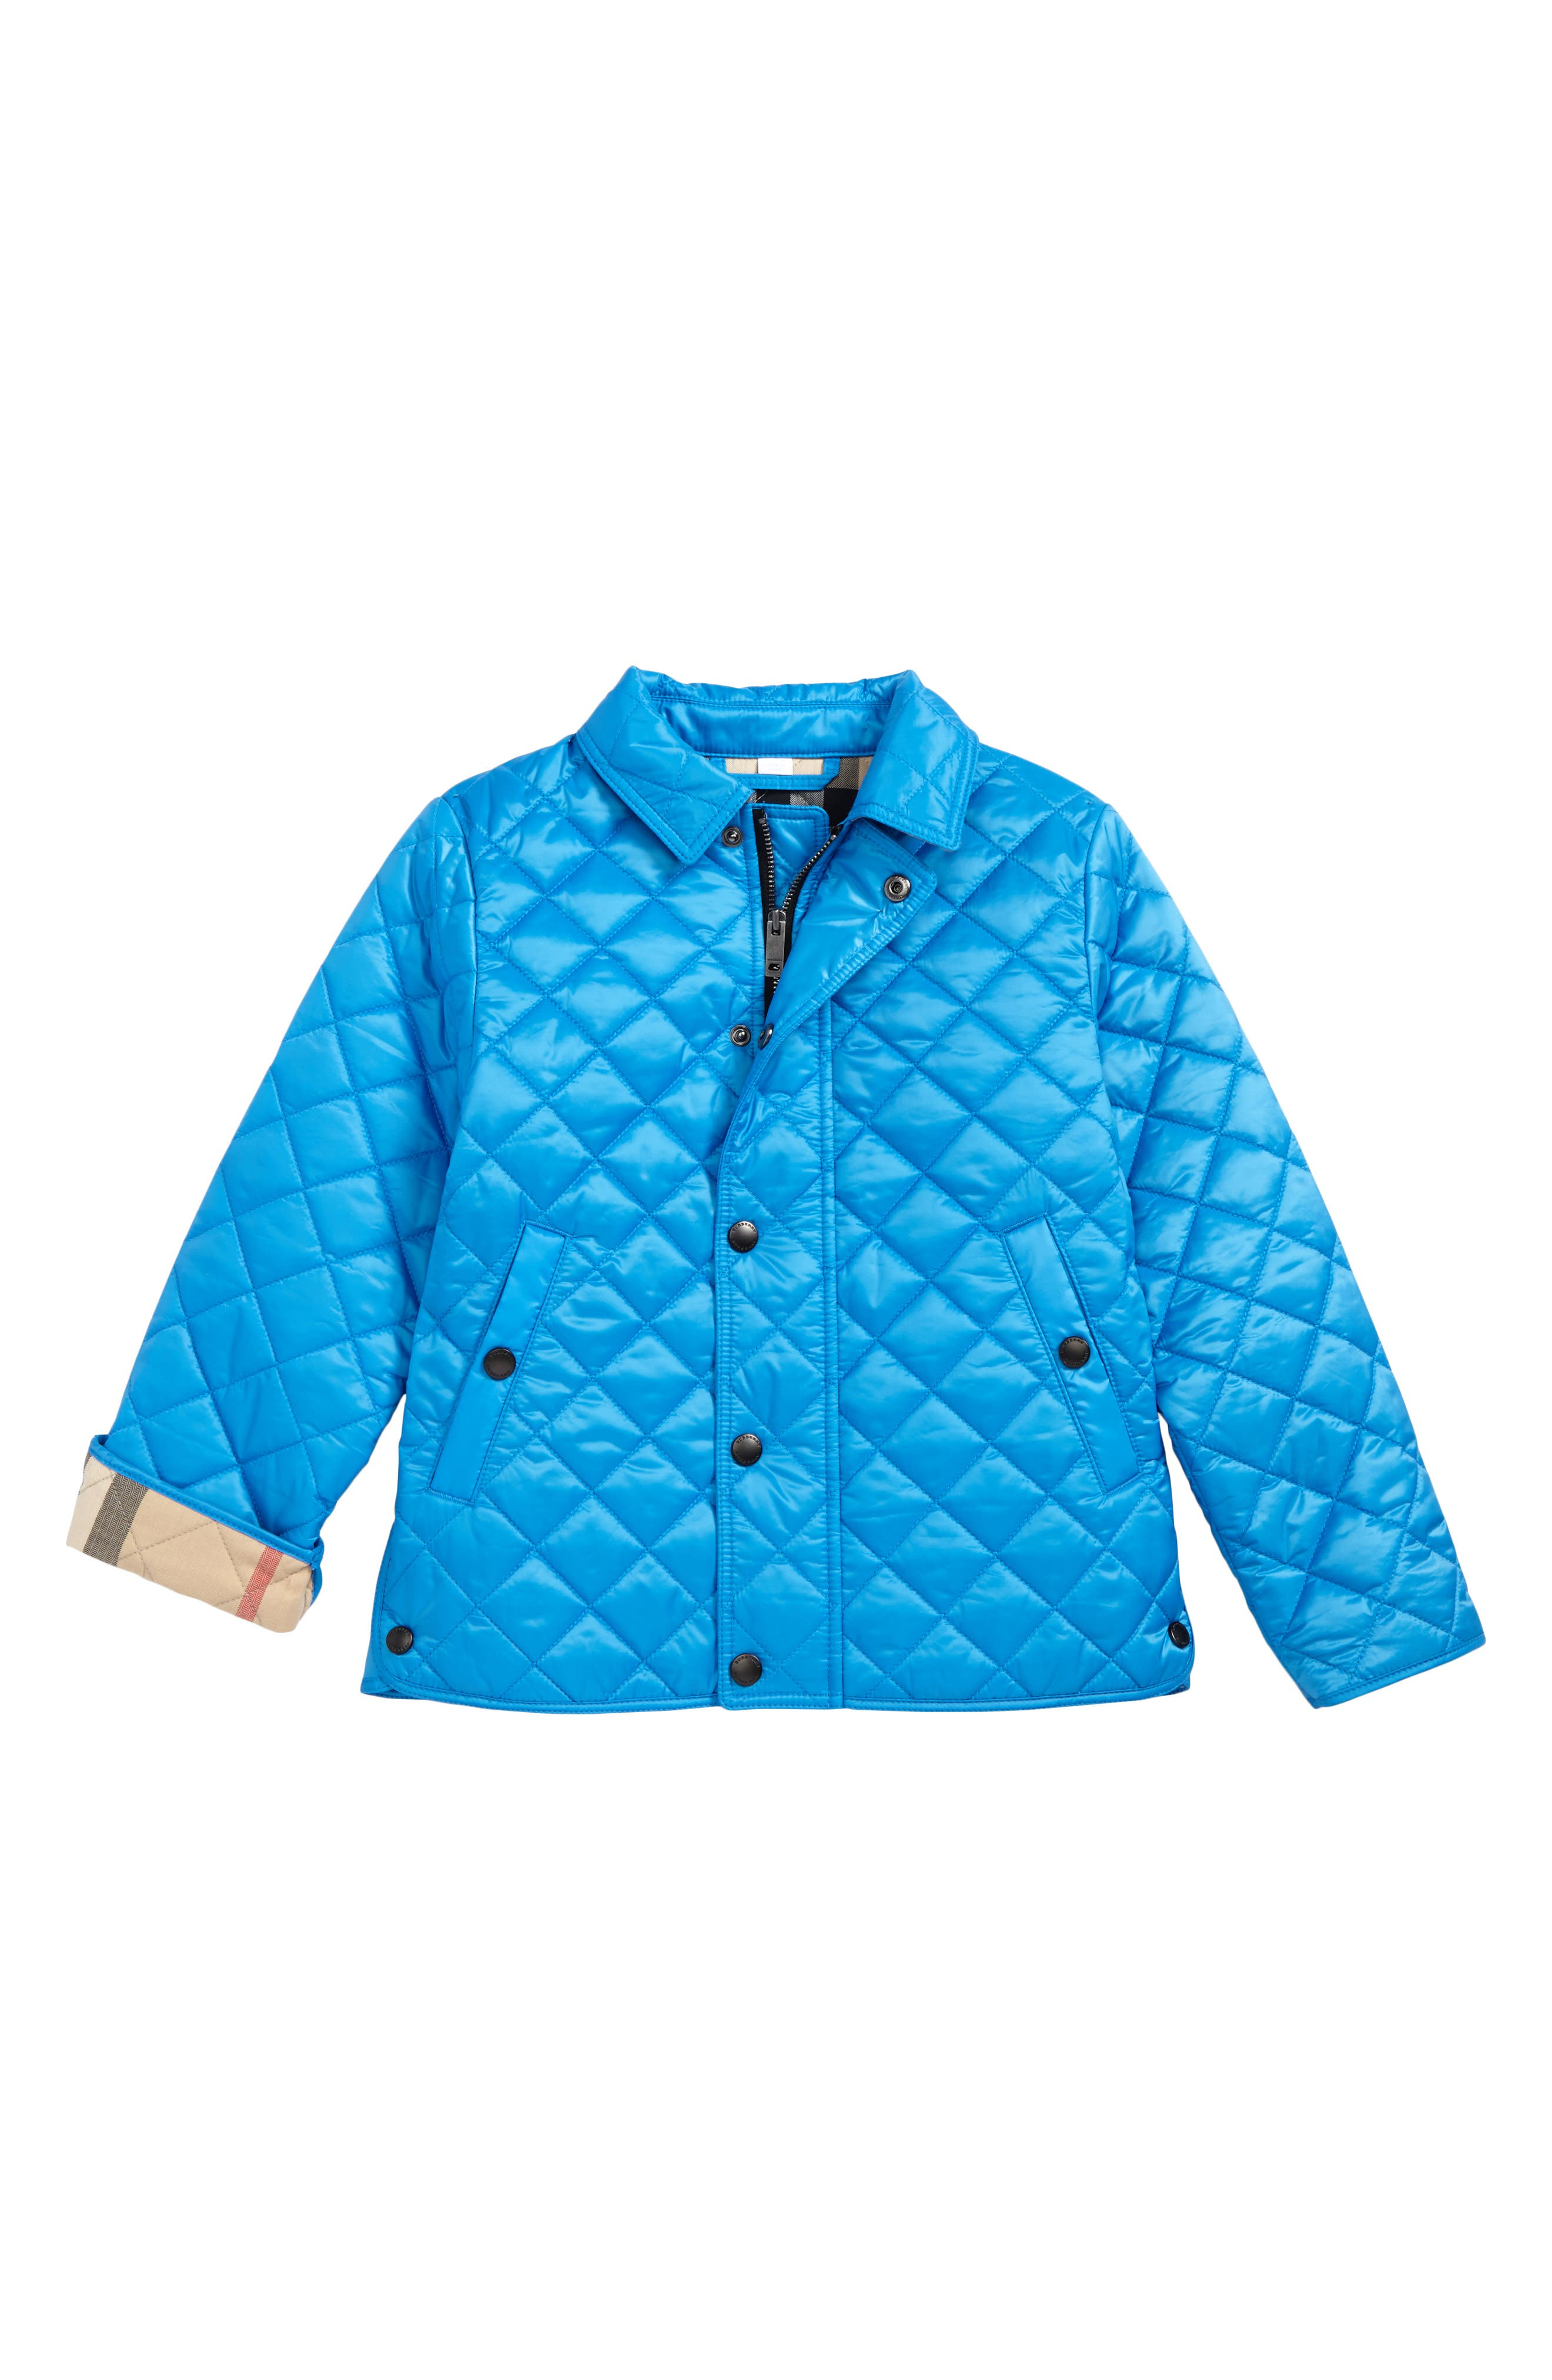 Luke Quilted Jacket,                             Main thumbnail 1, color,                             Cyan Blue